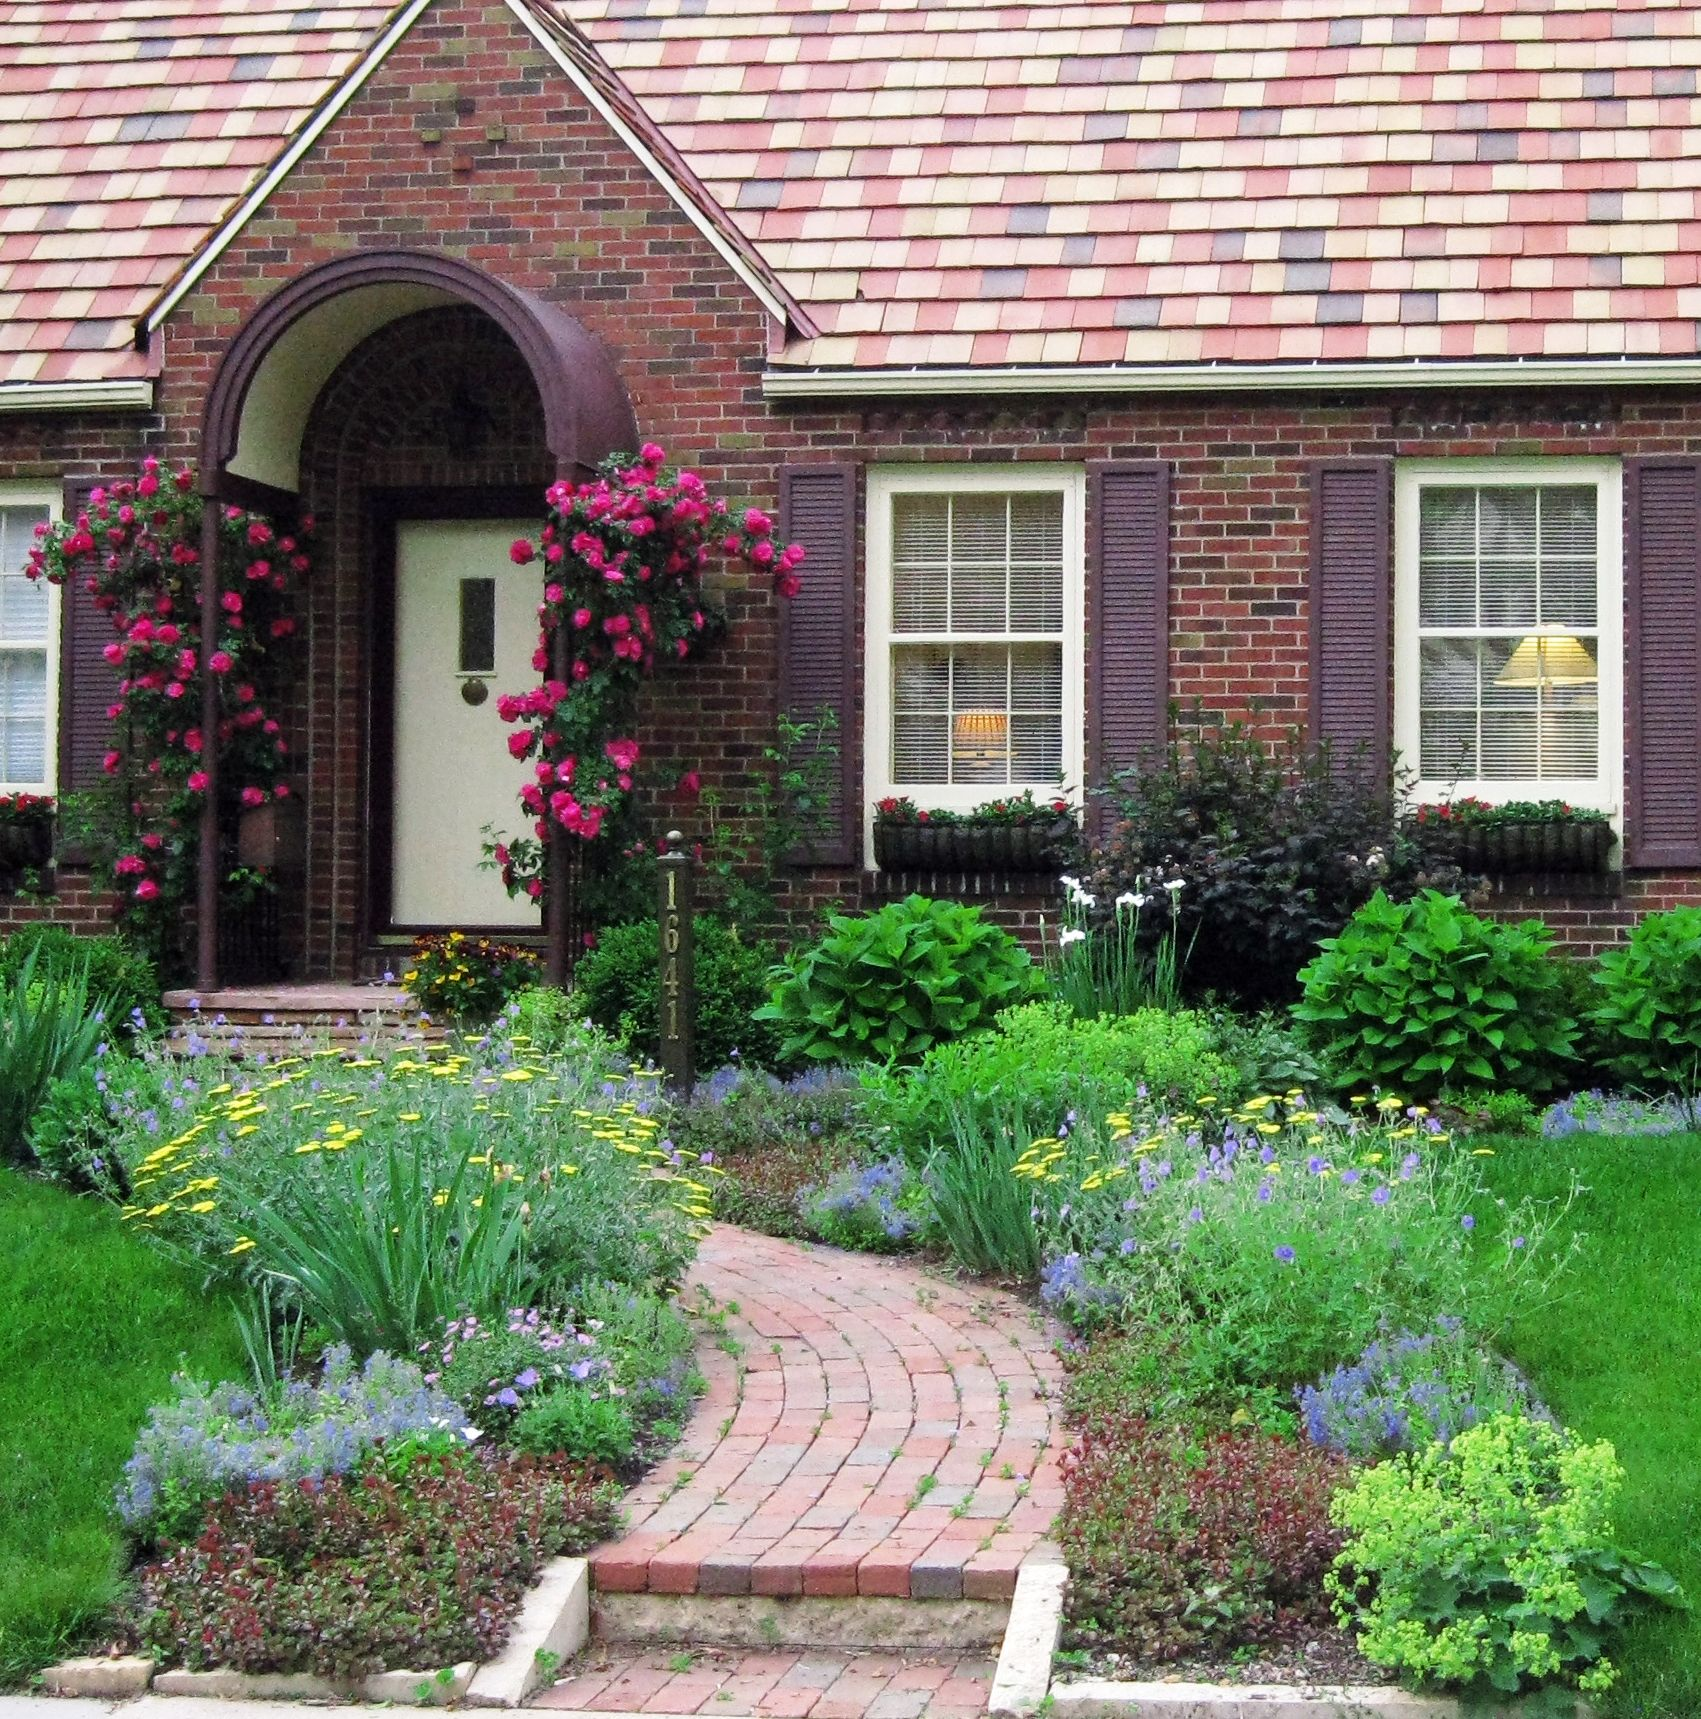 Front Yard Cottage Garden John Cabot Climbing Roses | Lori ... on Cottage Yard Ideas id=63984